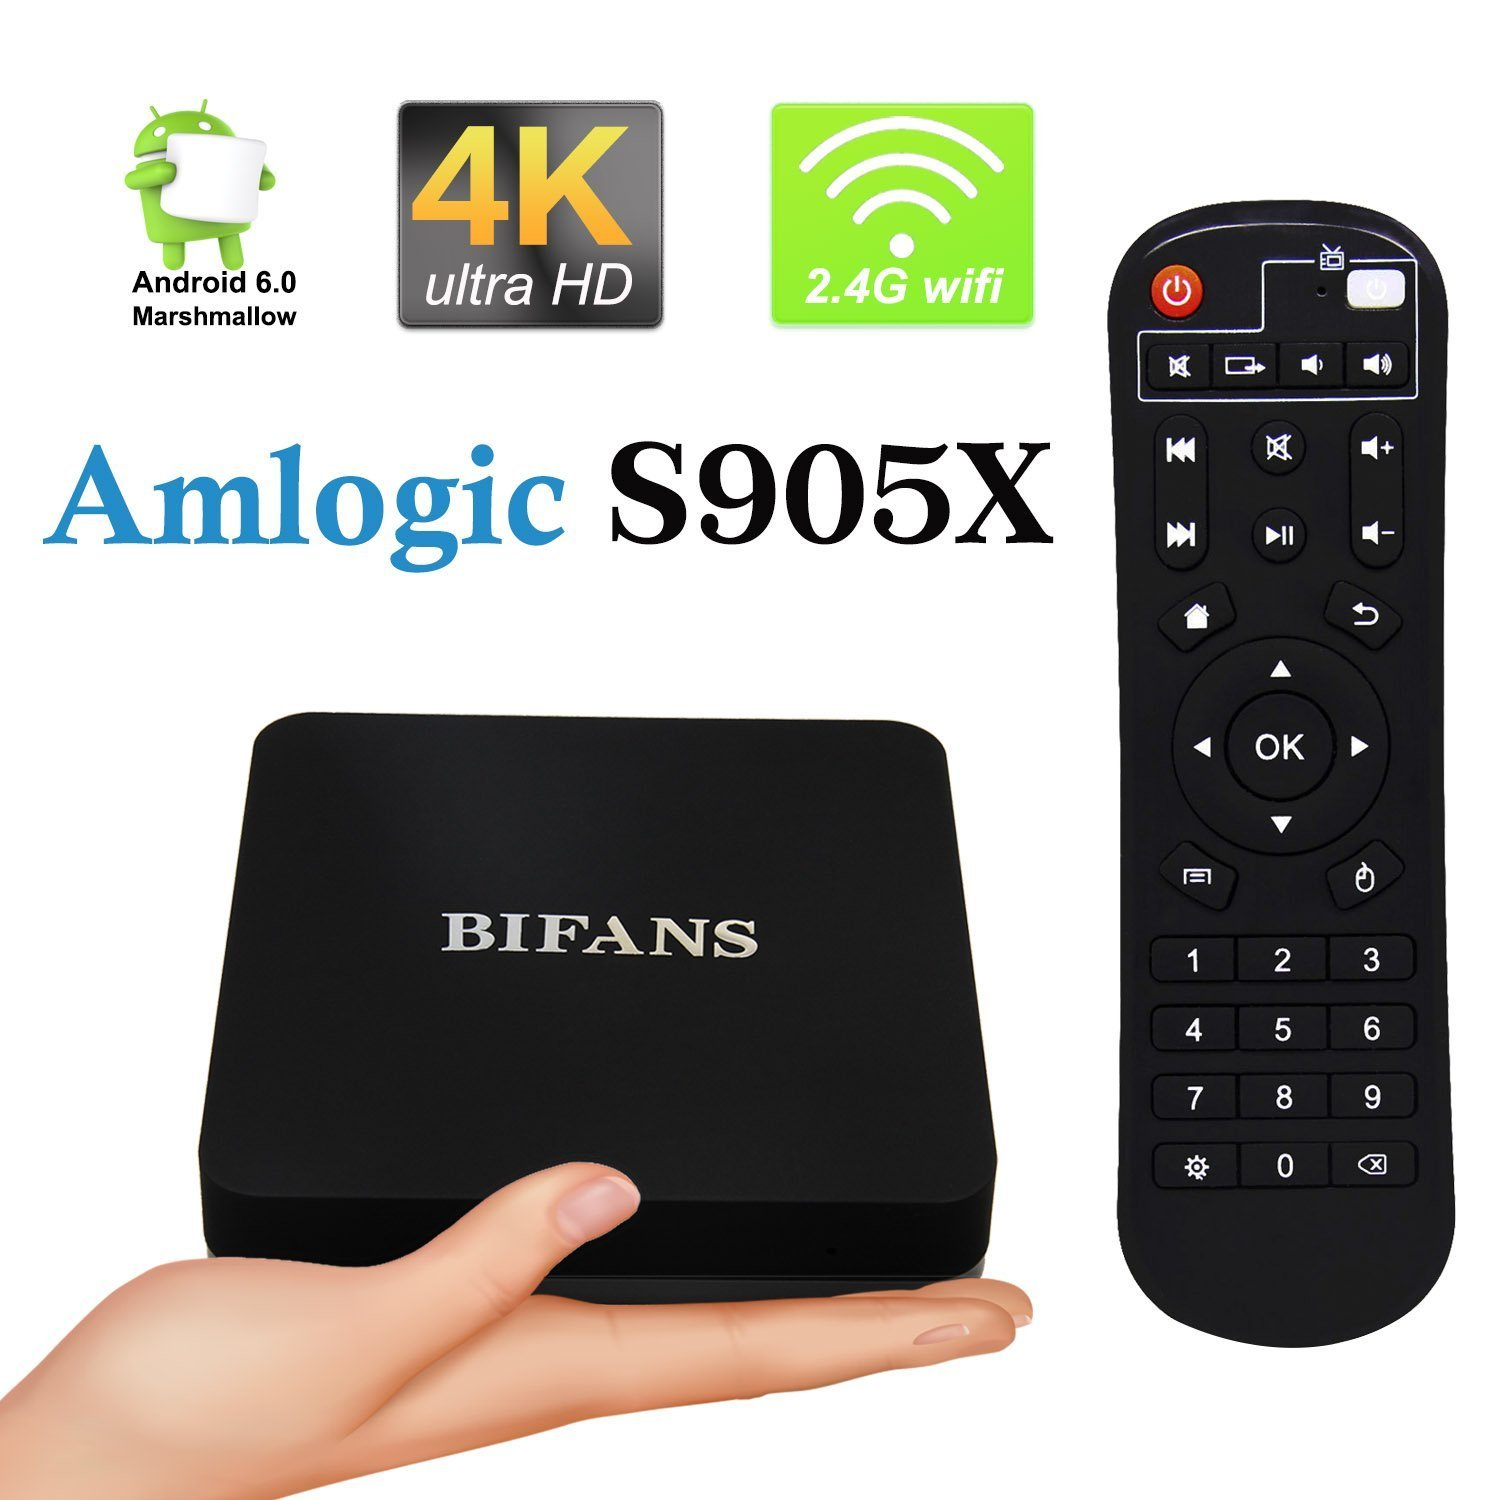 Android TV Box, bifans Pro 2 GB/16GB Bluetooth Android Smart TV Box, Amlogic S905 X